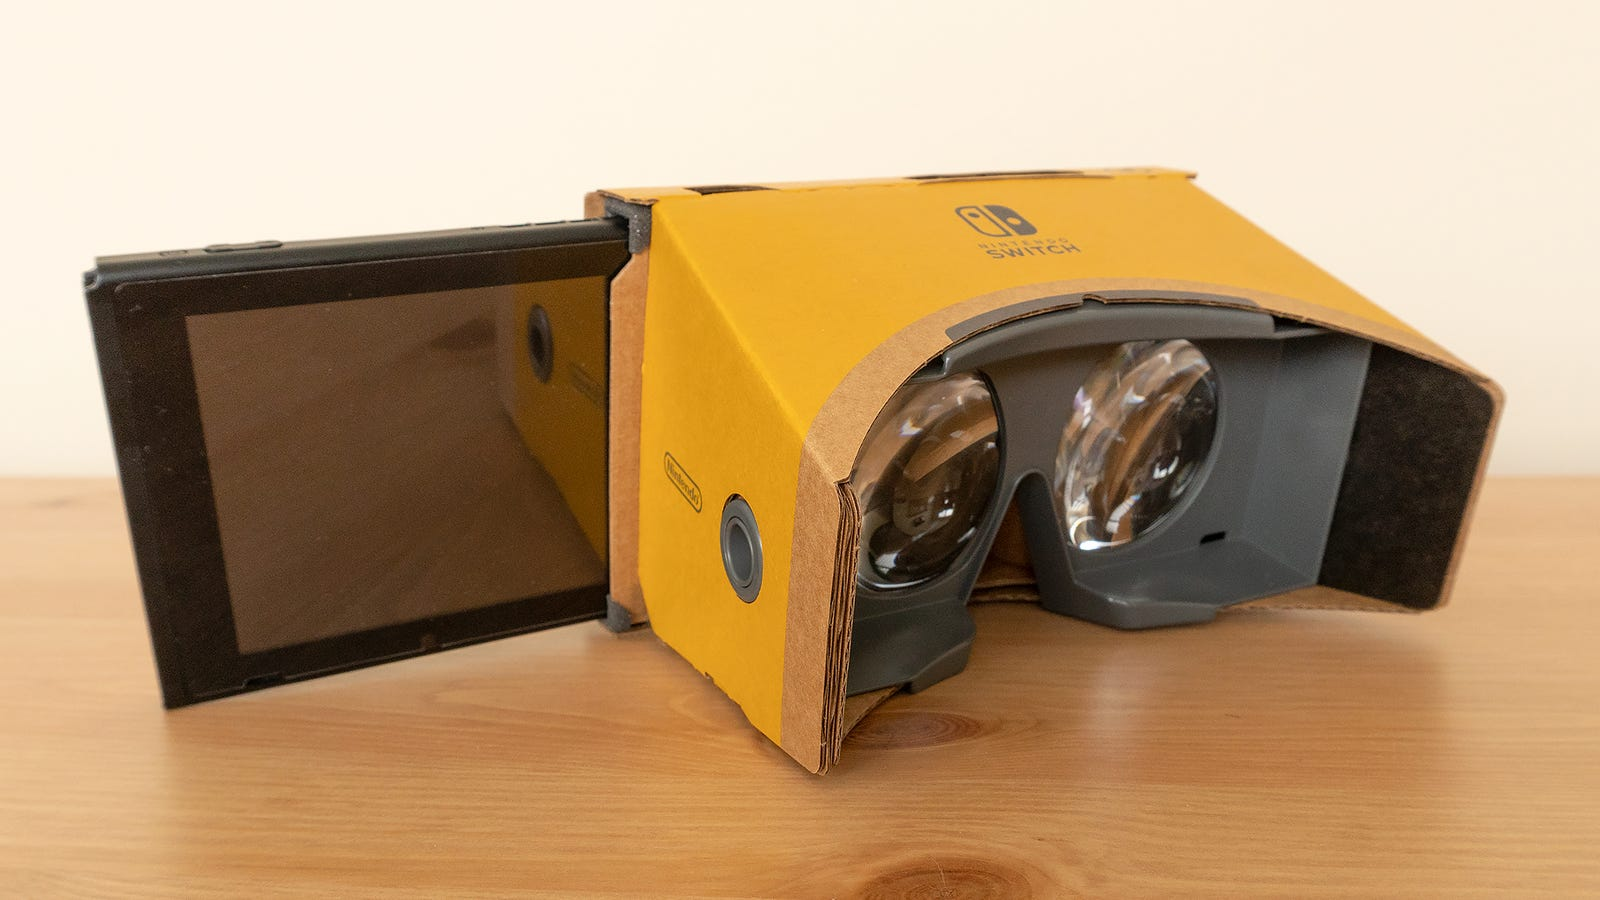 Each of the Toy-Cons rely on these cardboard VR Goggles which hold the Switch in a cardboard sleeve behind a pair of large plastic lenses.